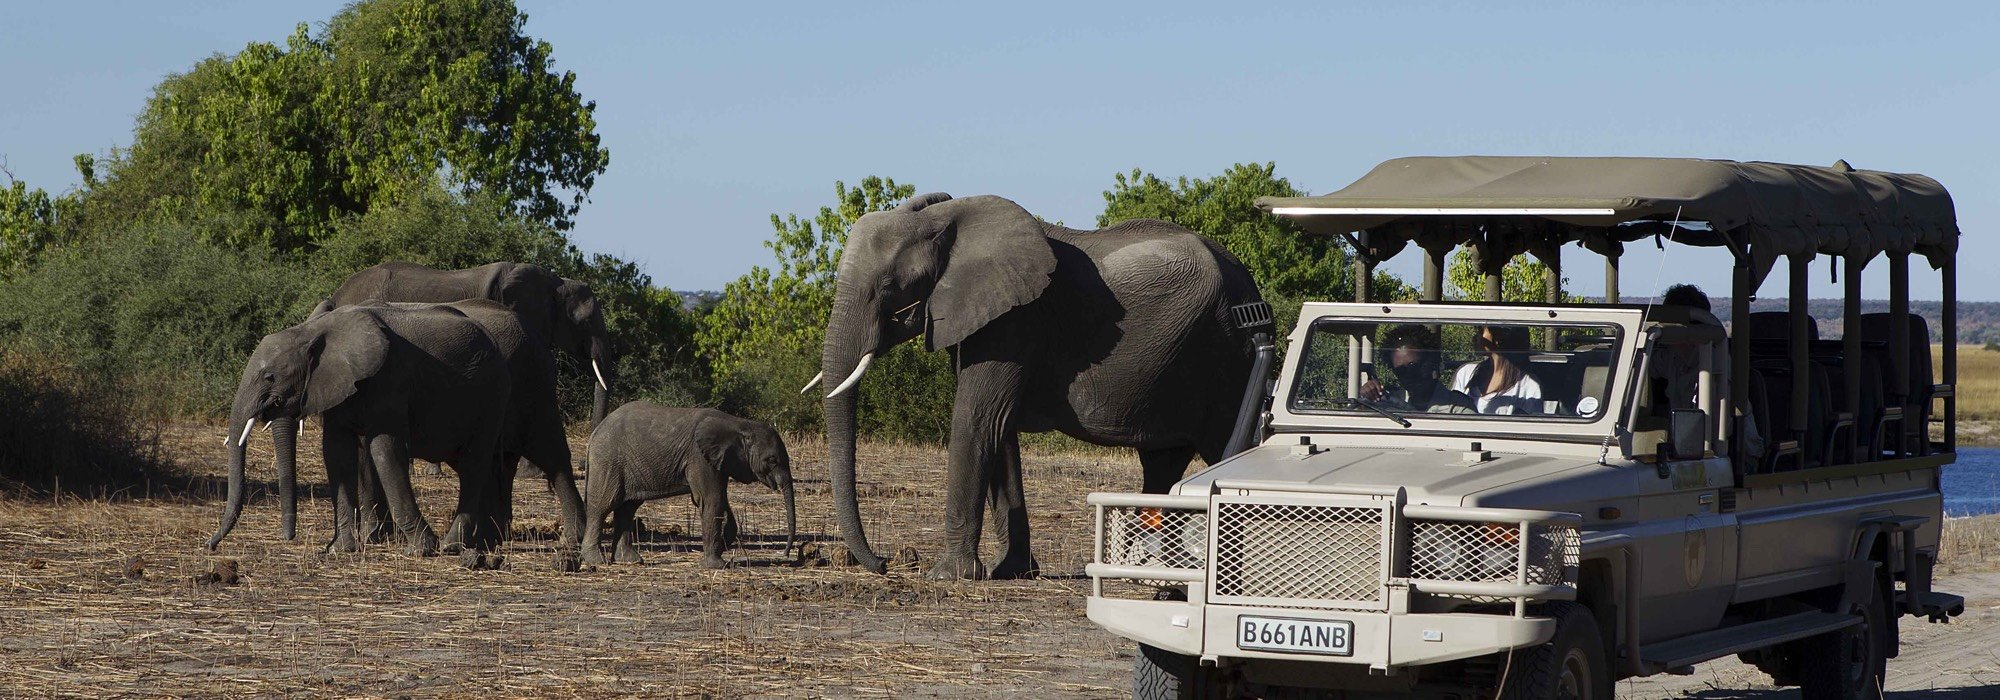 Elephants on safari in Botswana